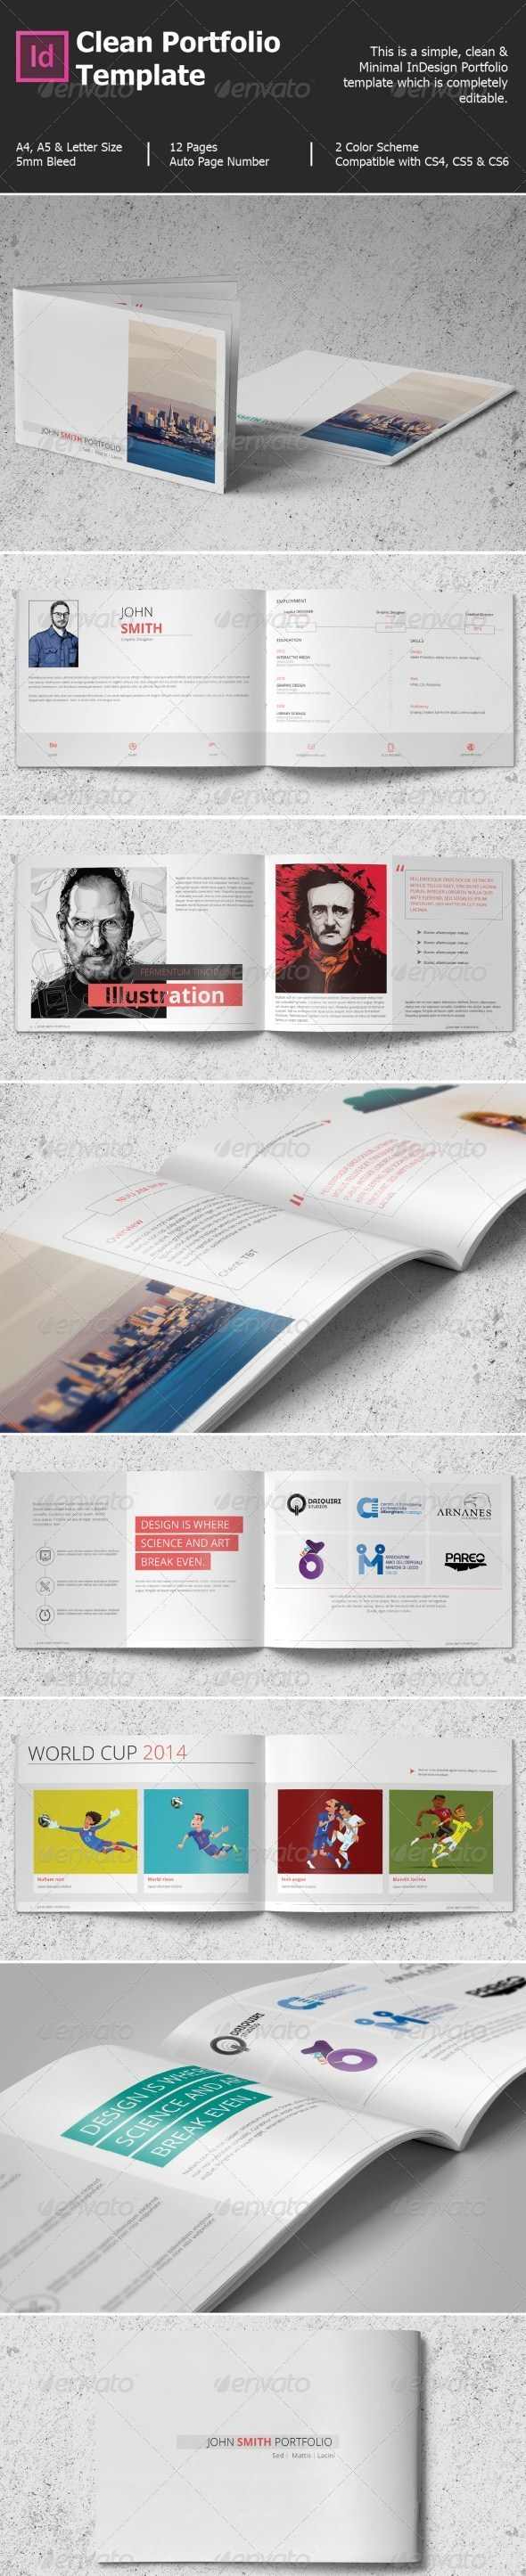 GraphicRiver Clean Portfolio Template 8387120